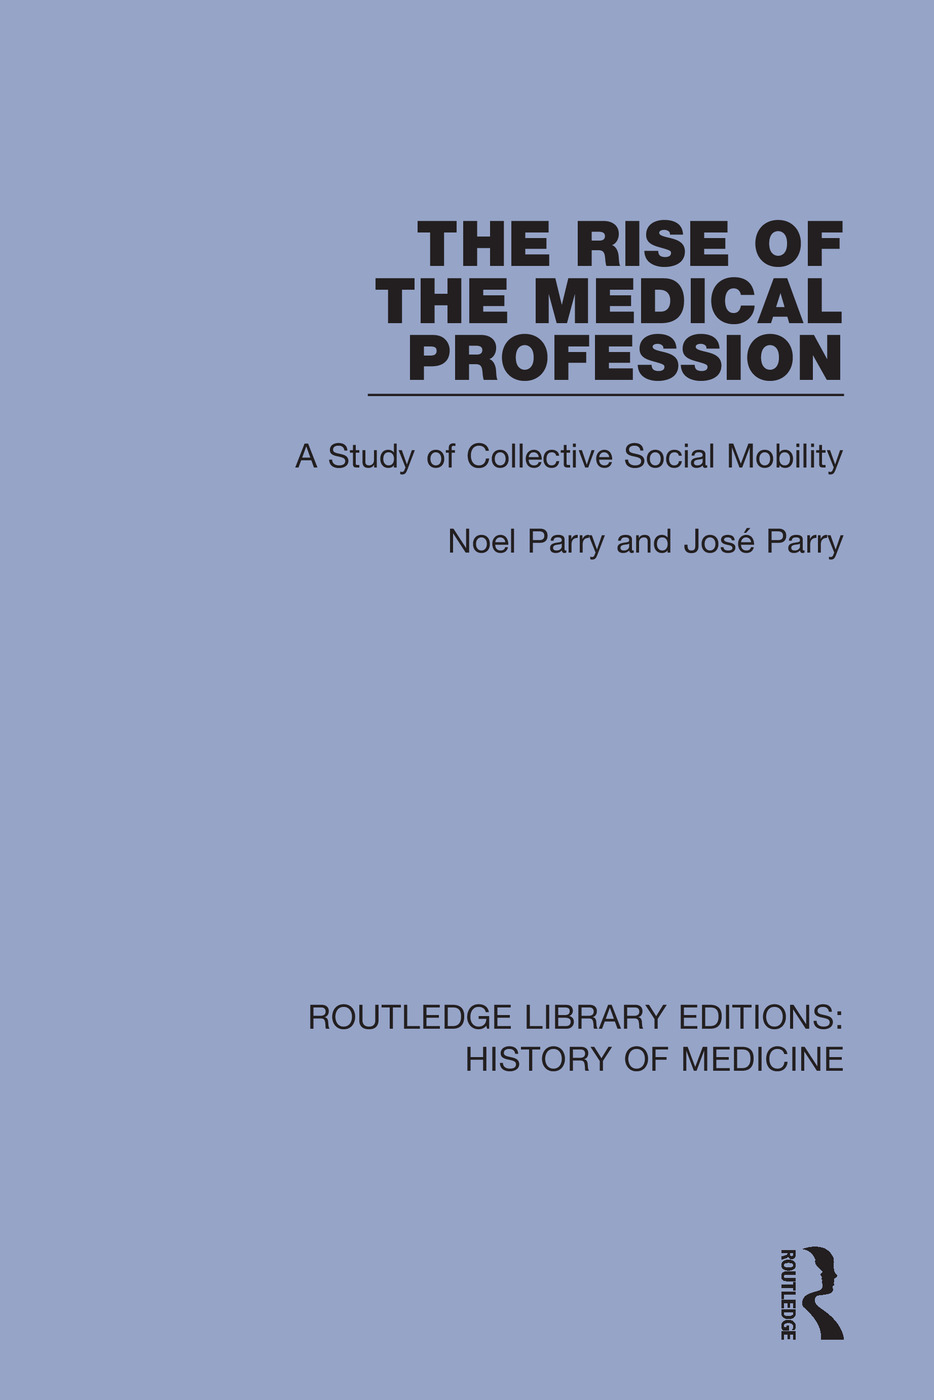 The Rise of the Medical Profession: A Study of Collective Social Mobility book cover